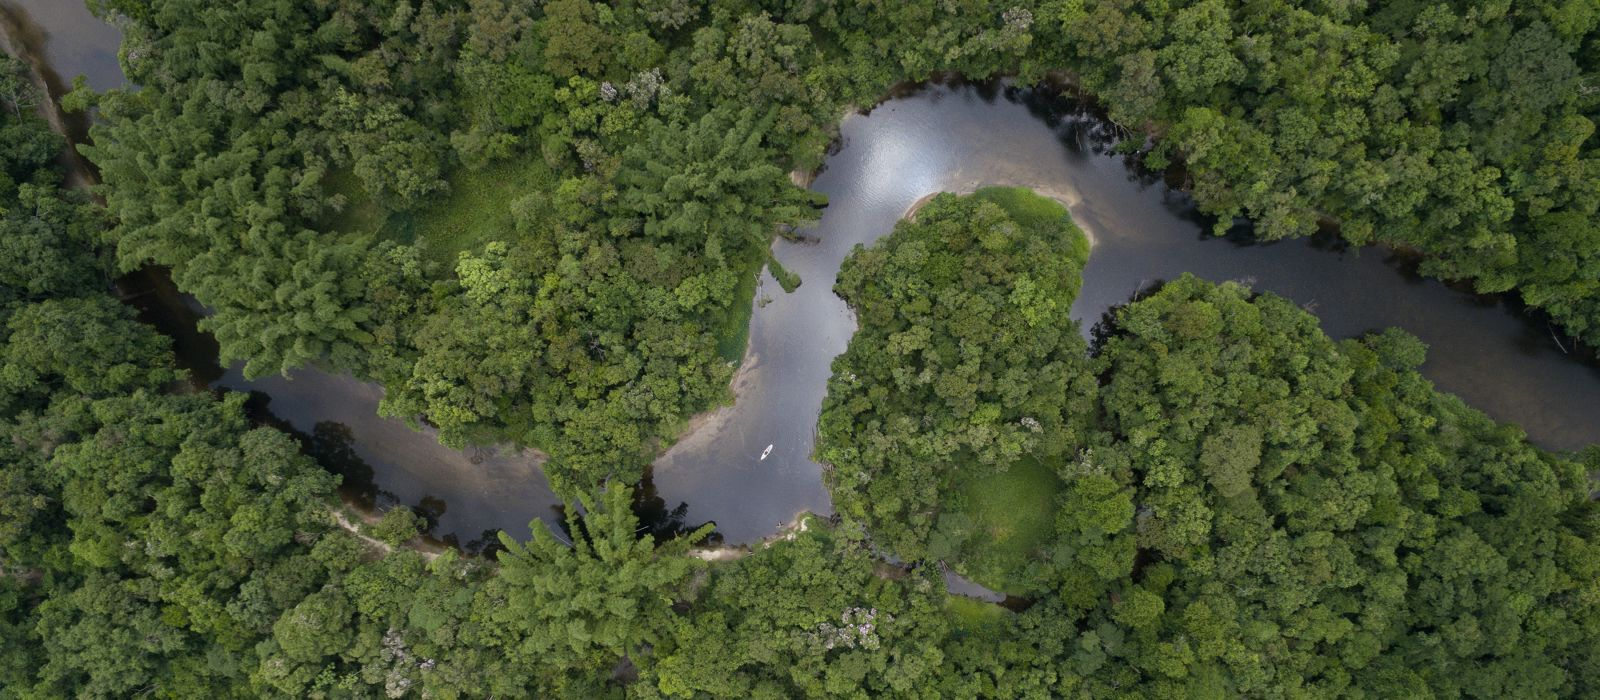 Top View of Amazon River, Brazil, South America